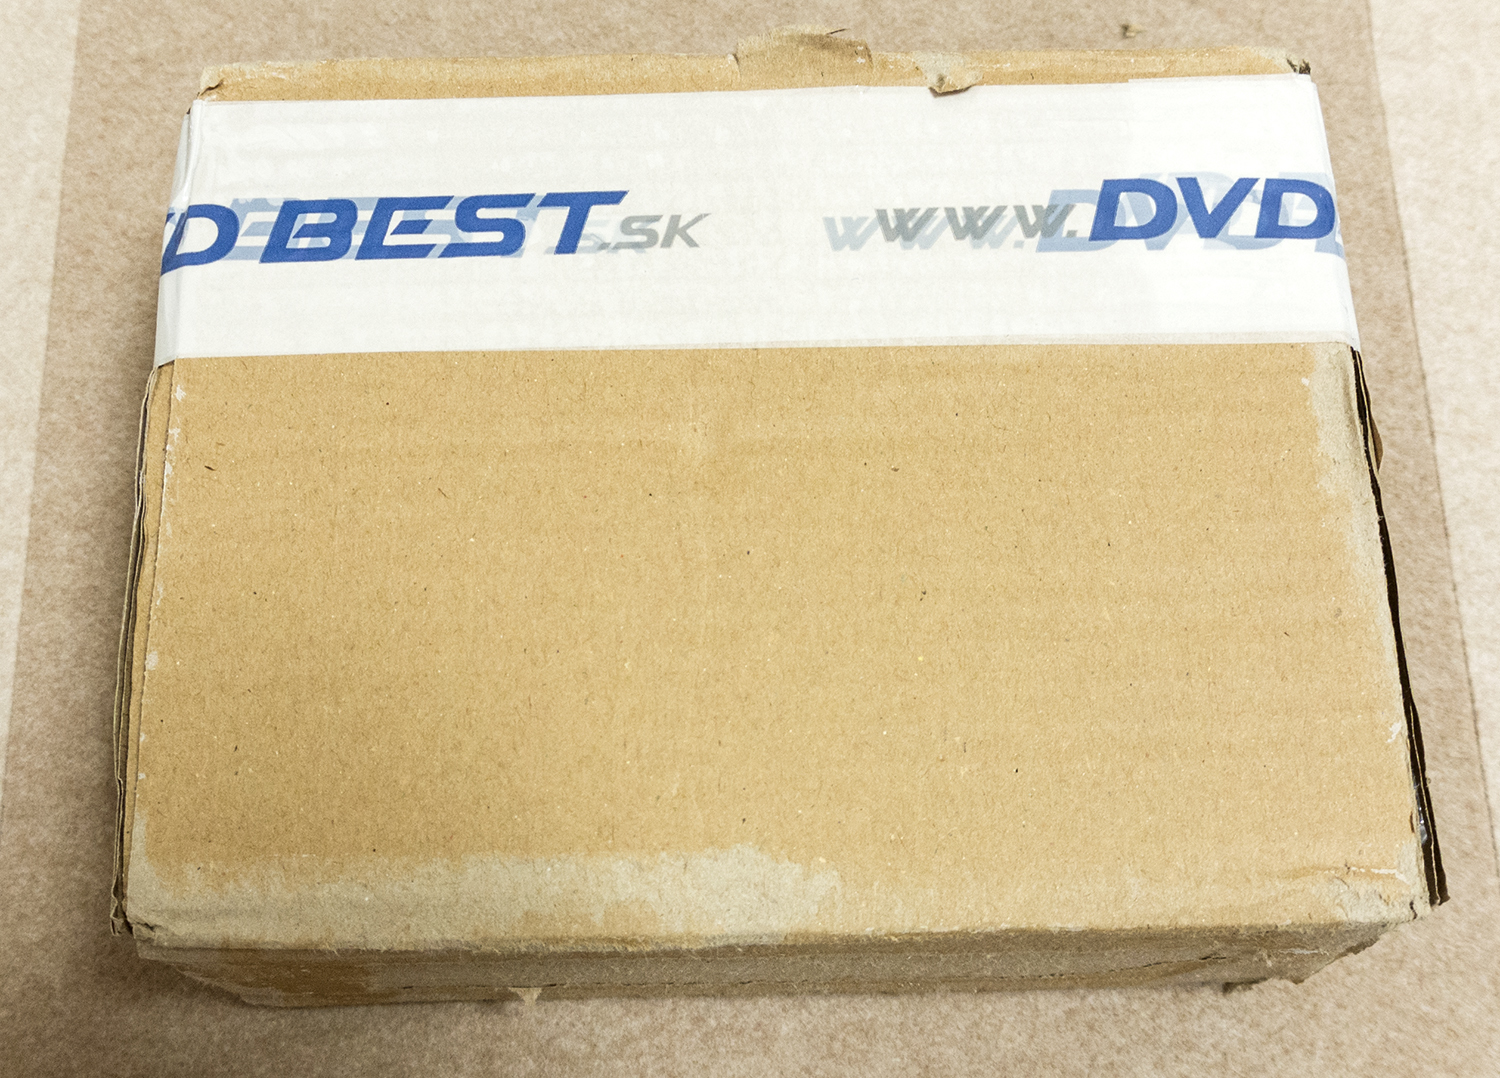 DVDBEST.sk 通販 買い方